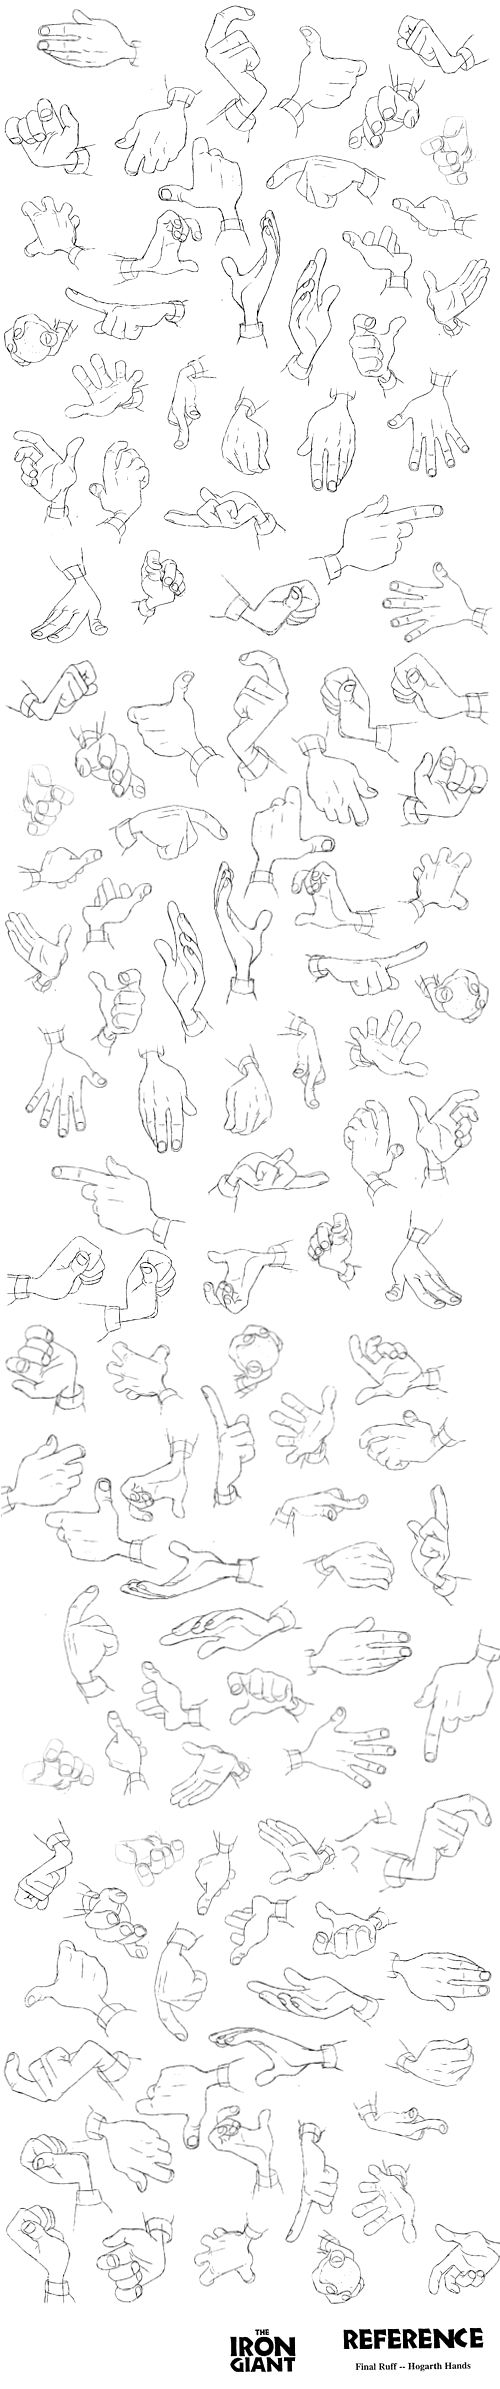 Hands! Iron Giant ✤ || CHARACTER DESIGN REFERENCES